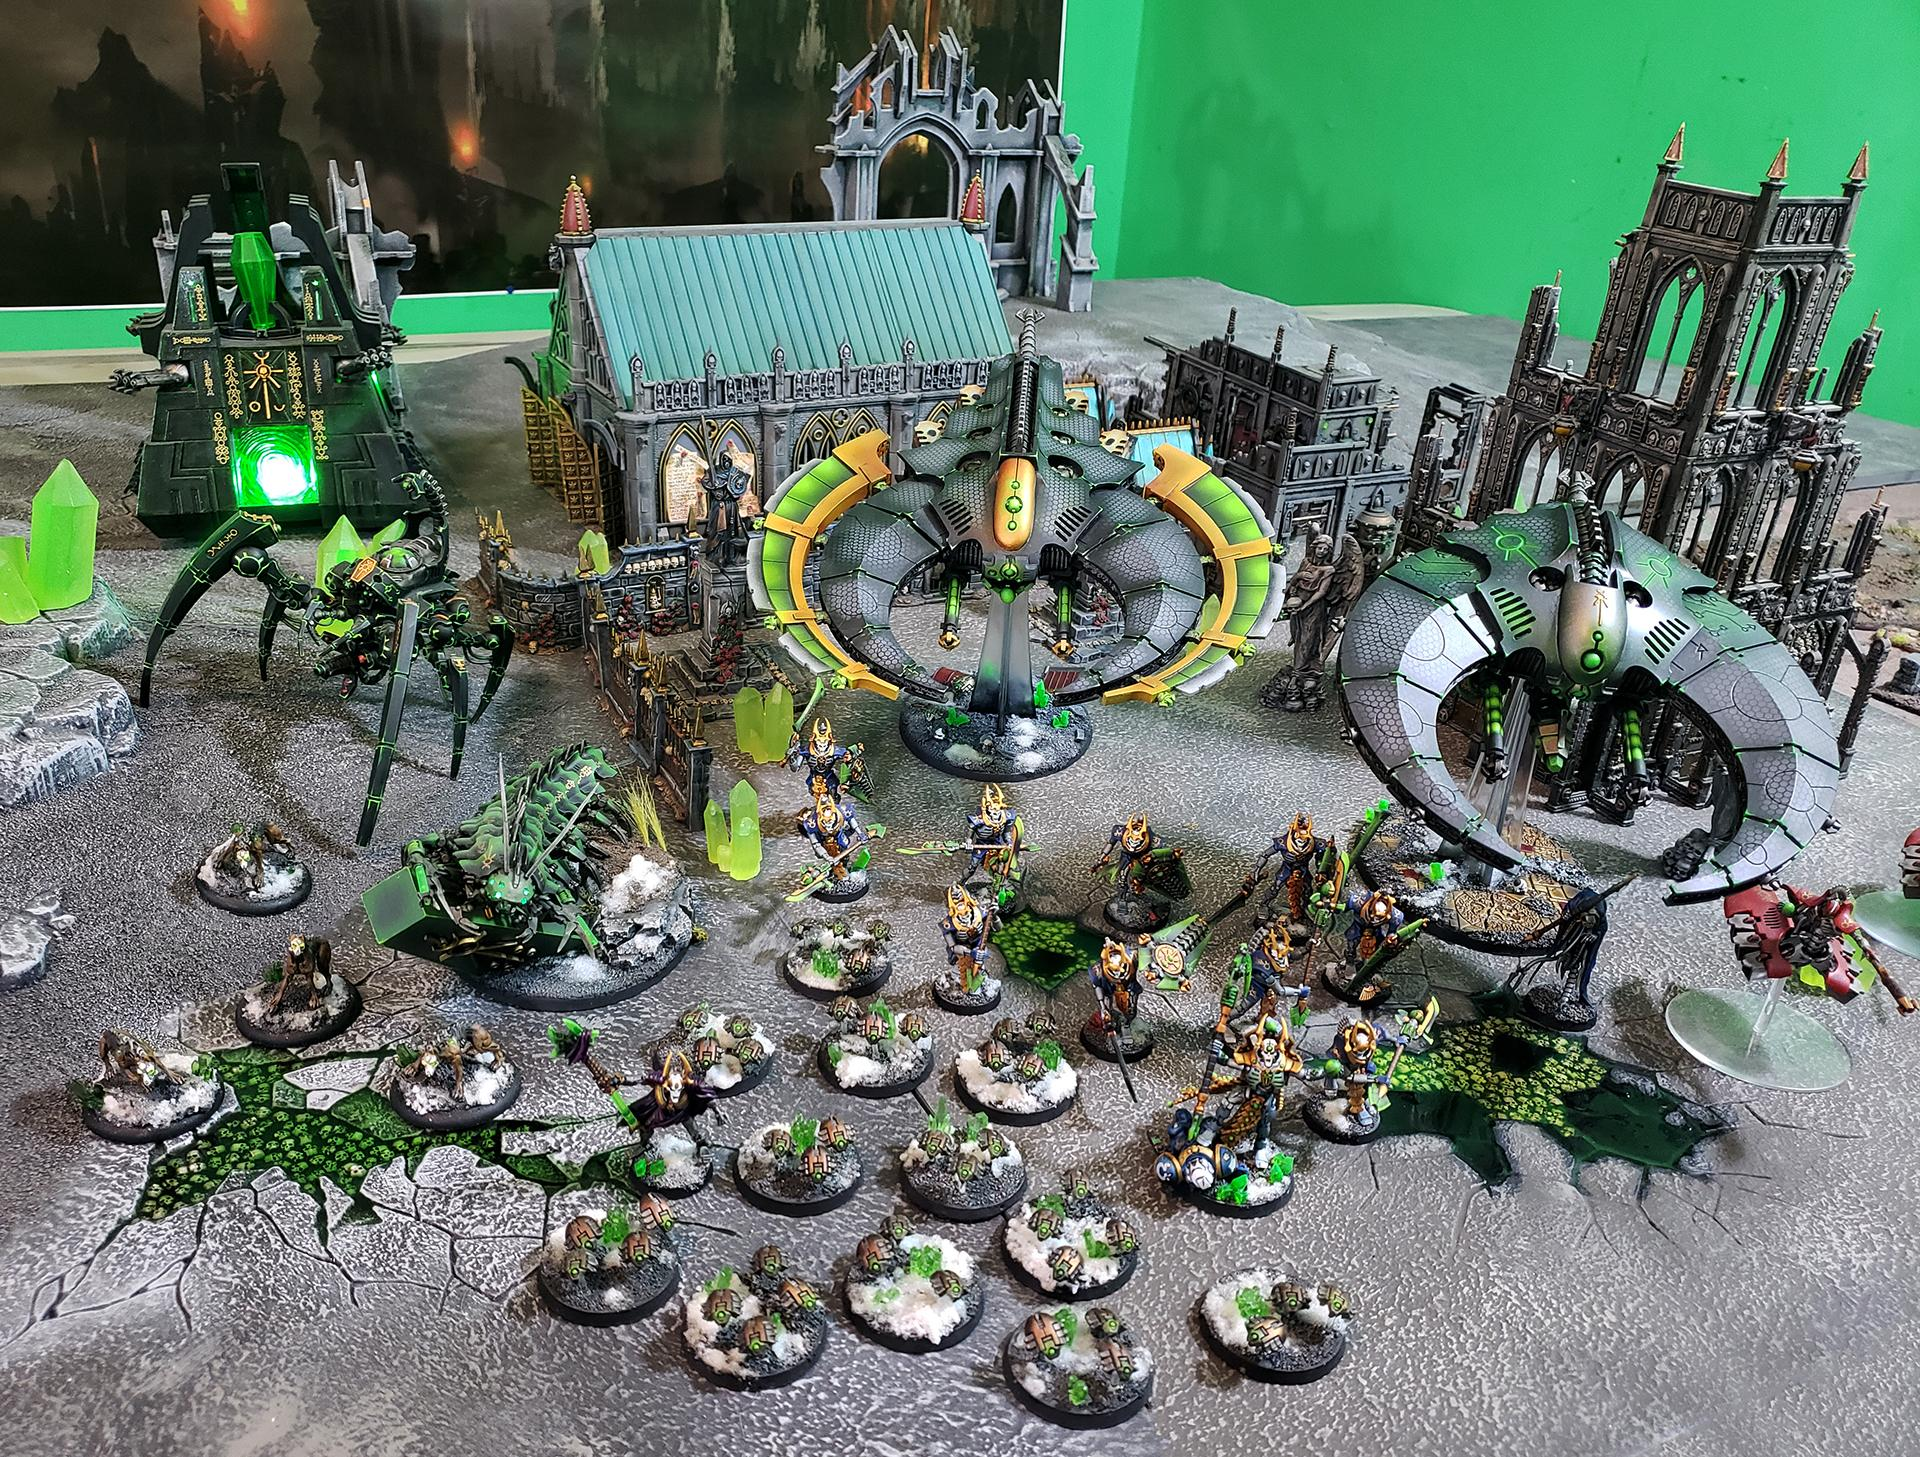 3d Print, 3d Printing, Conversion, Doom Scythe, Flyer, Necrons, Night Scythe